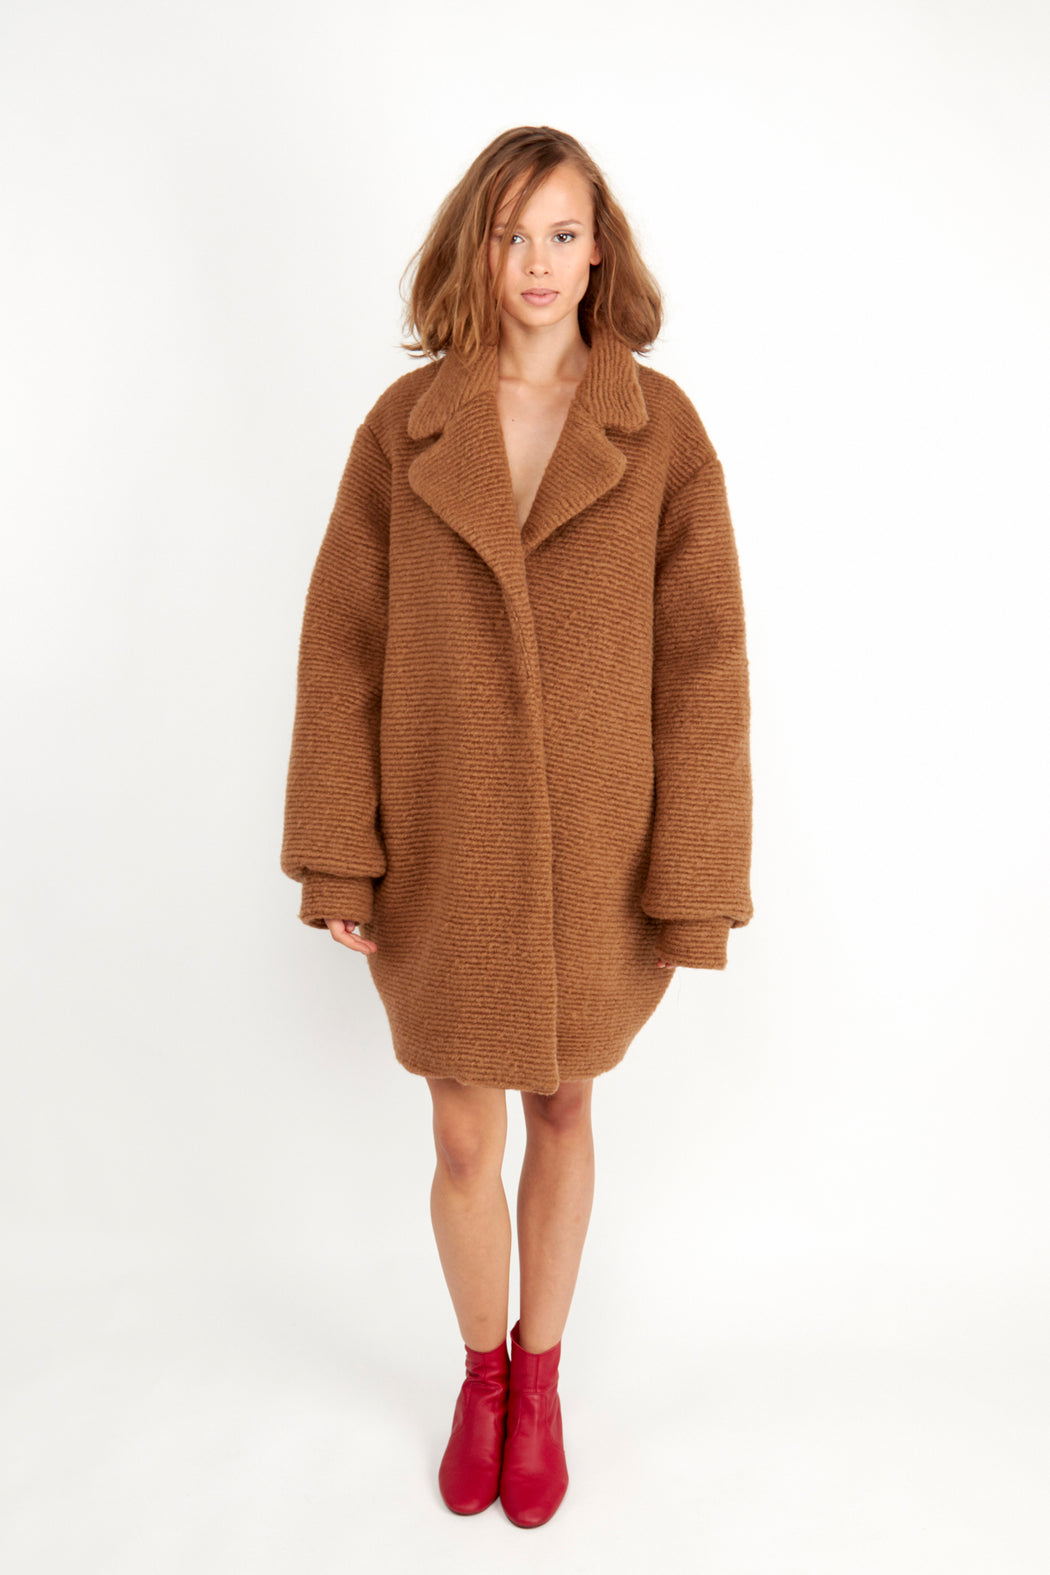 Suky Overcoat Caramel | Coats & Jackets | Fair Retail | [product_tag] - Fair Bazaar Ethical Living